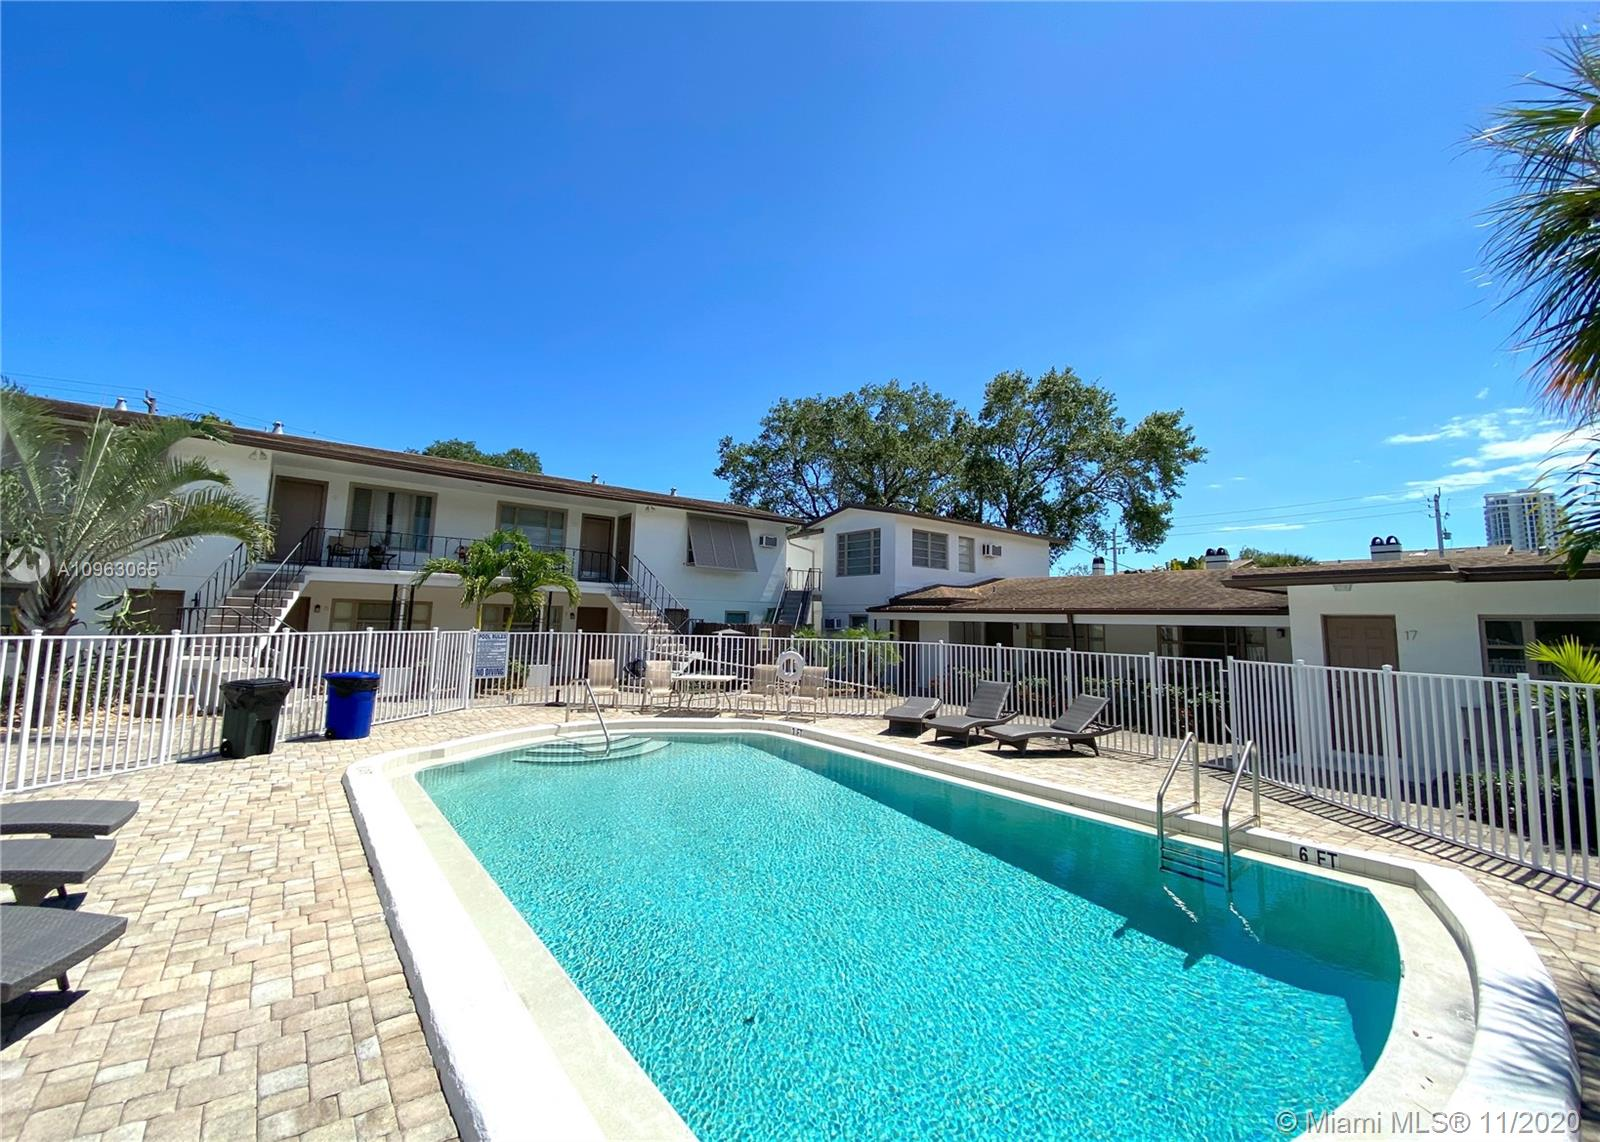 408 NE 7th Ave # 1, Fort Lauderdale, Florida 33301, 1 Bedroom Bedrooms, ,1 BathroomBathrooms,Residential Lease,For Rent,408 NE 7th Ave # 1,A10963065